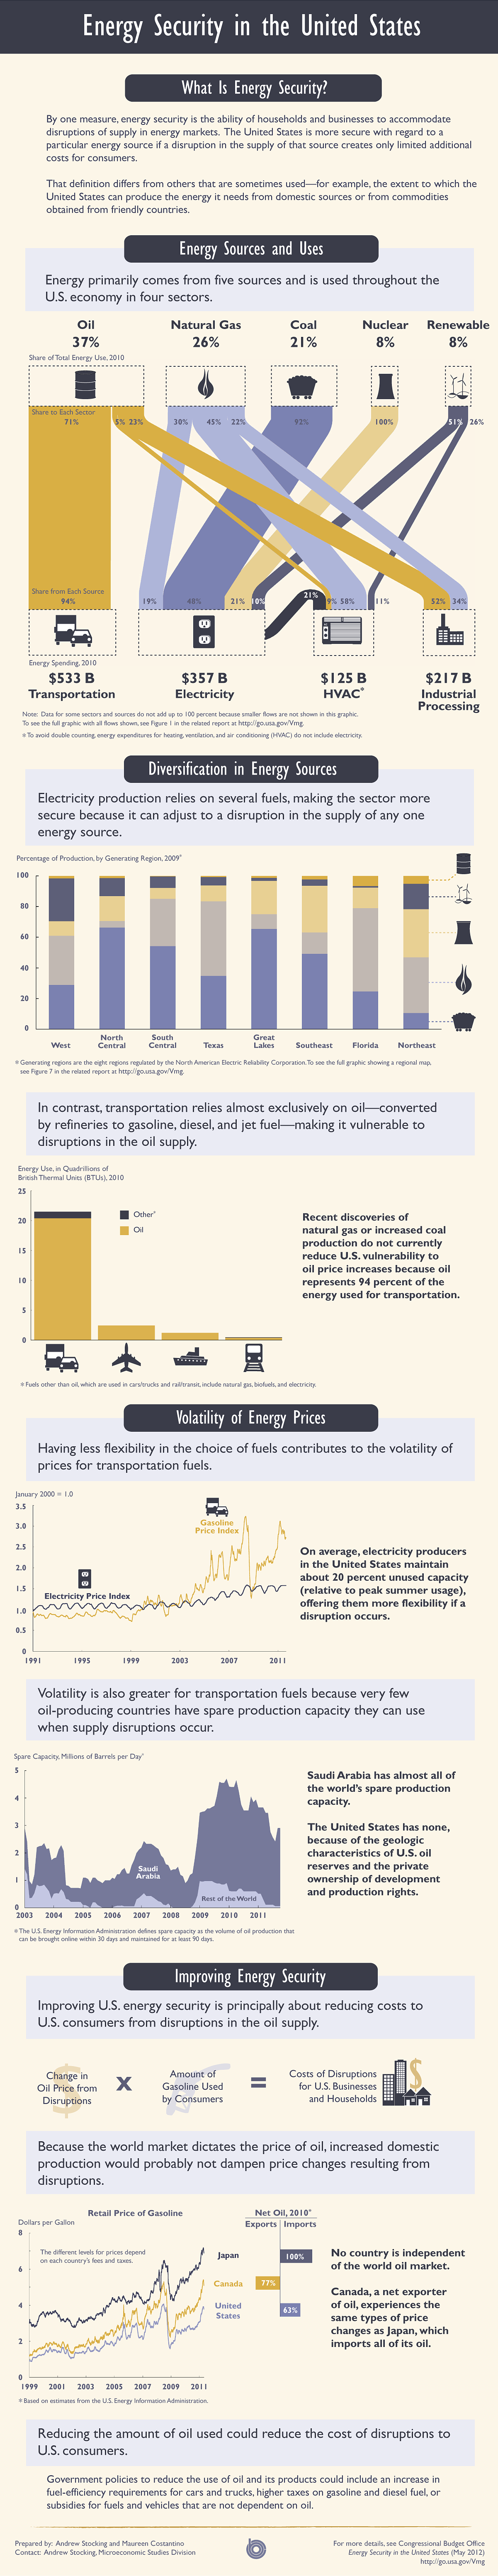 Energy Security Infographic